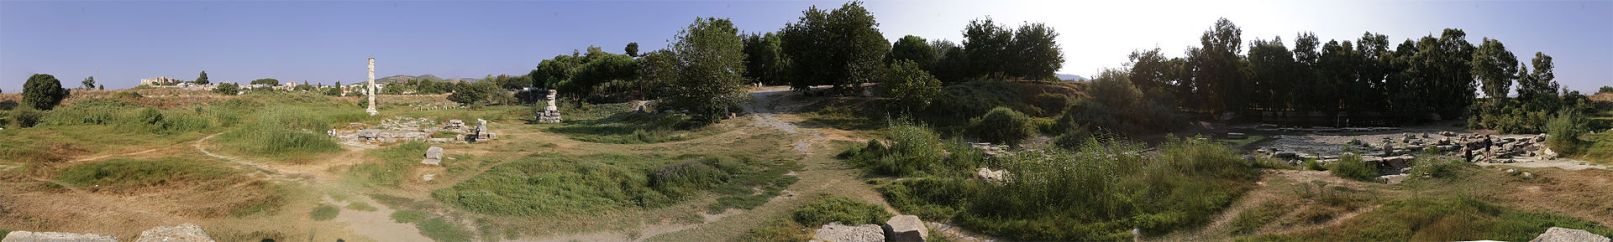 Site_of_Temple_of_Artemis